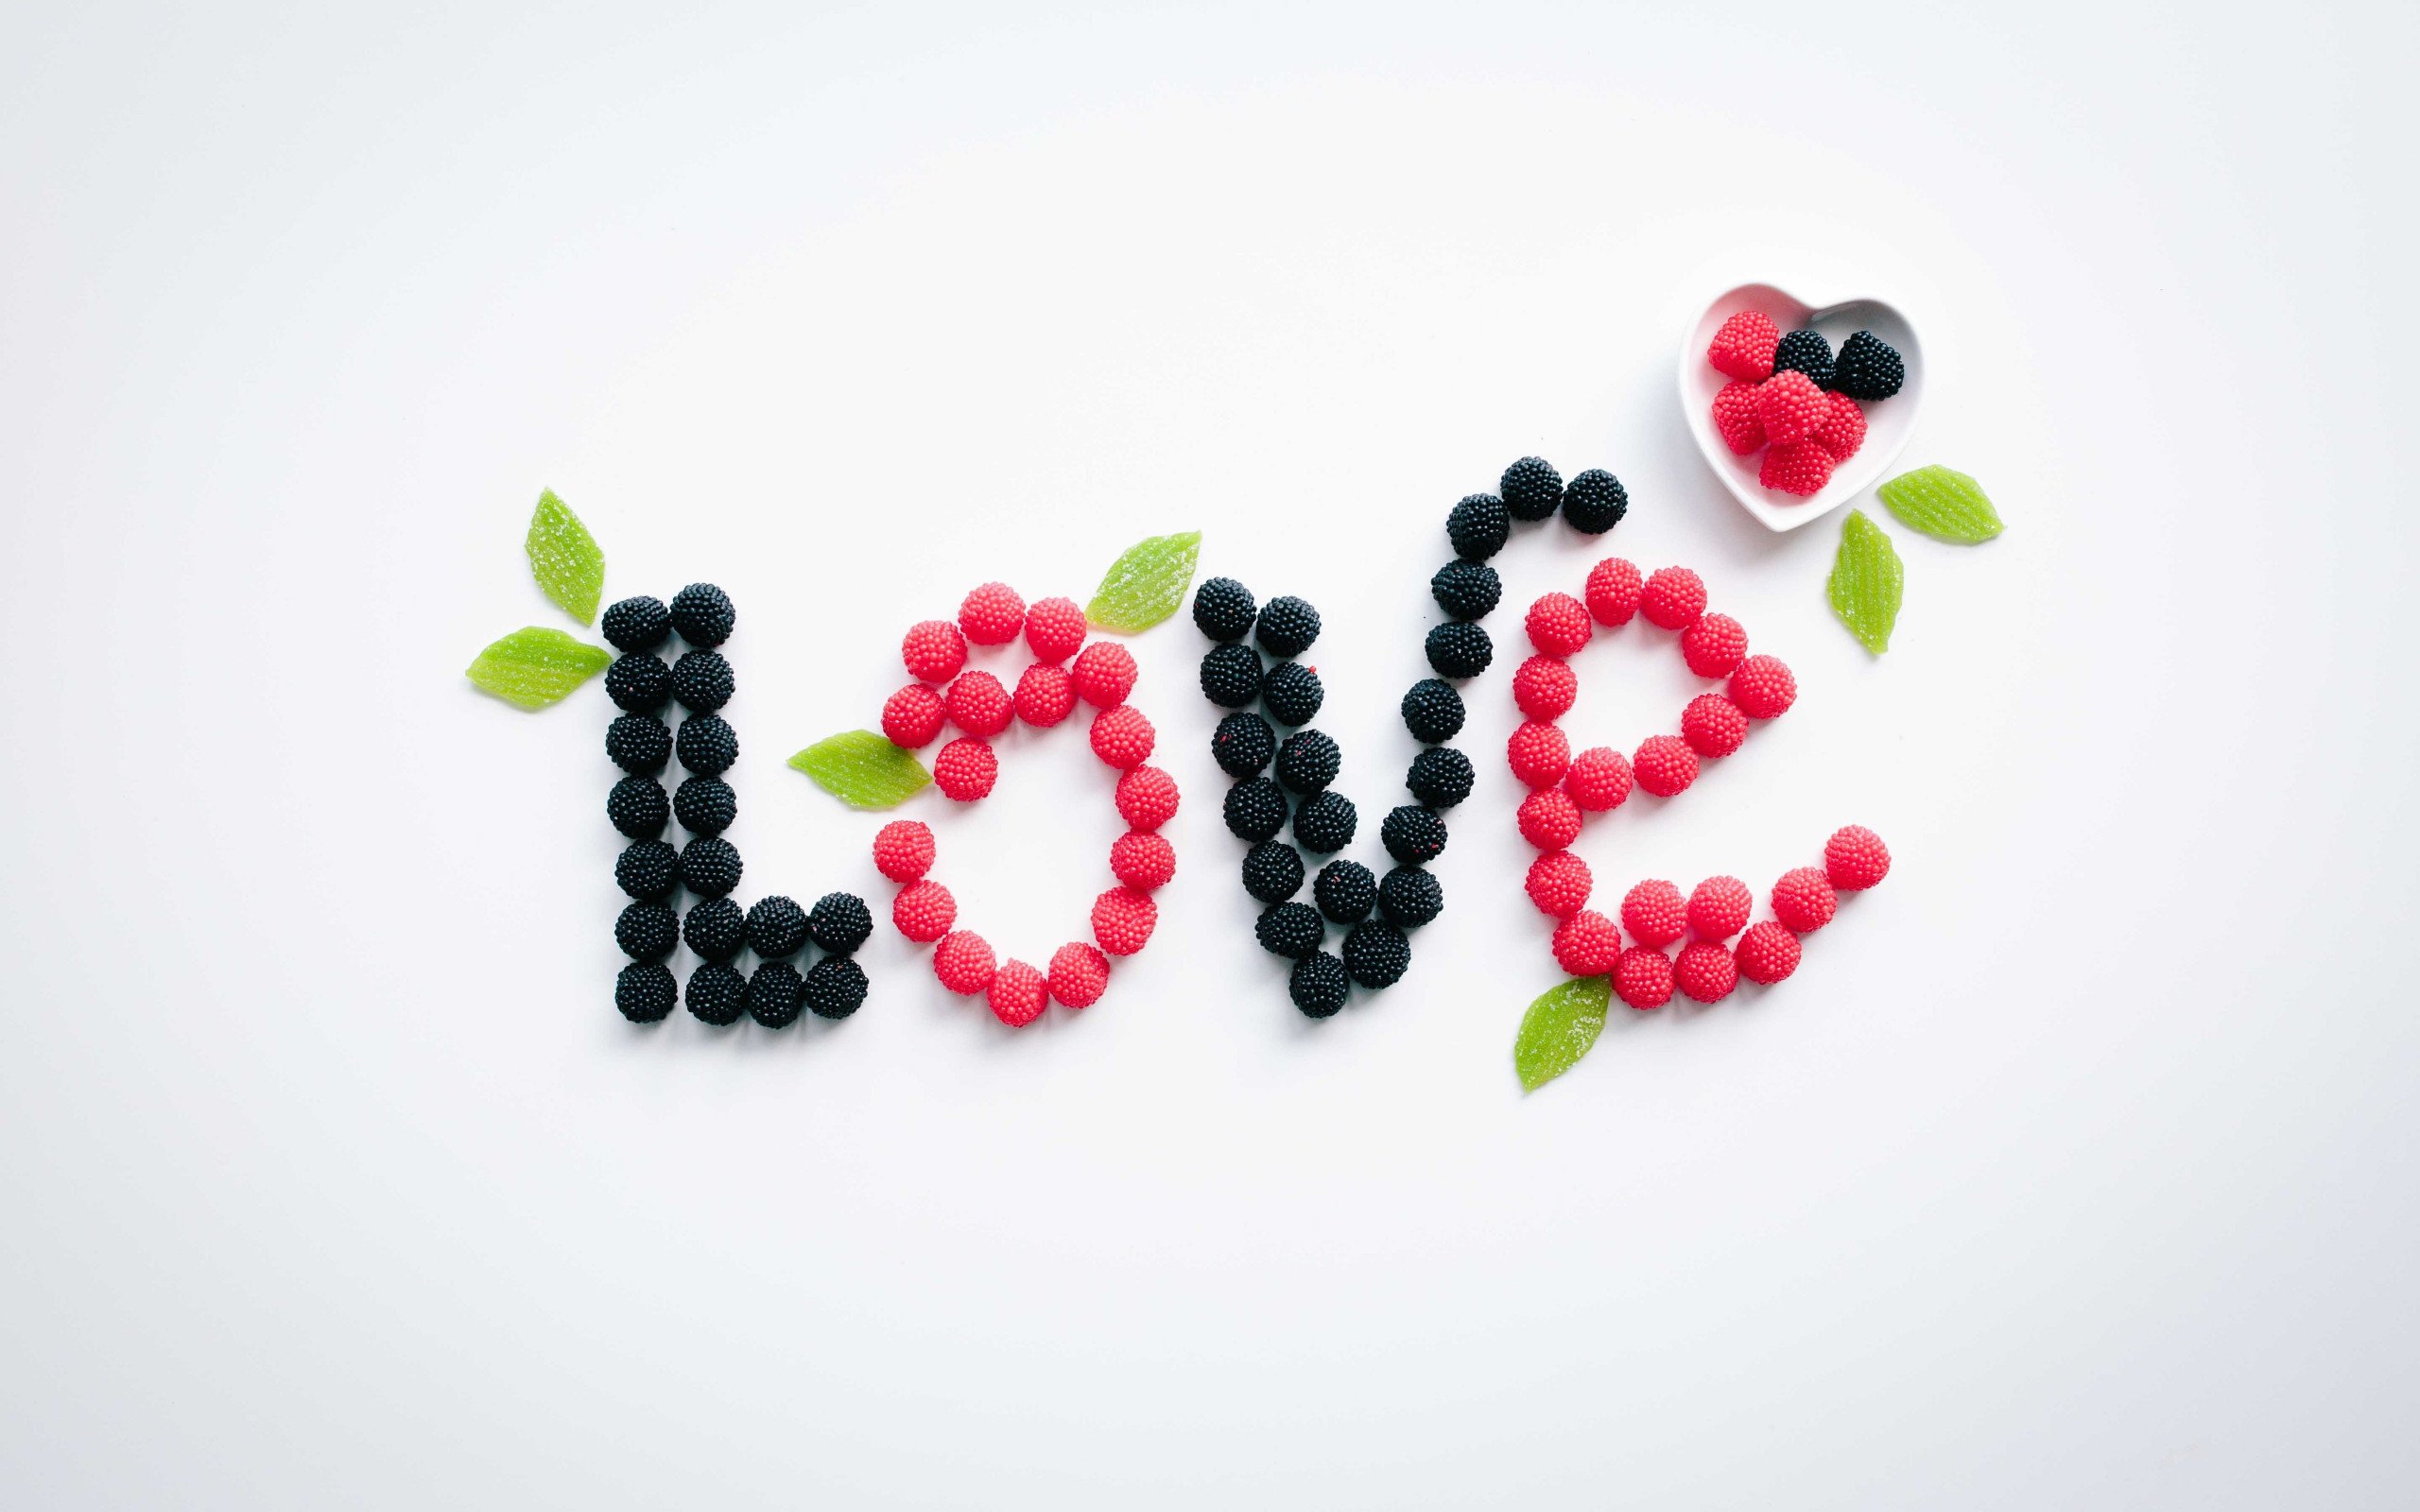 Love message with fruits | 2560x1600 wallpaper